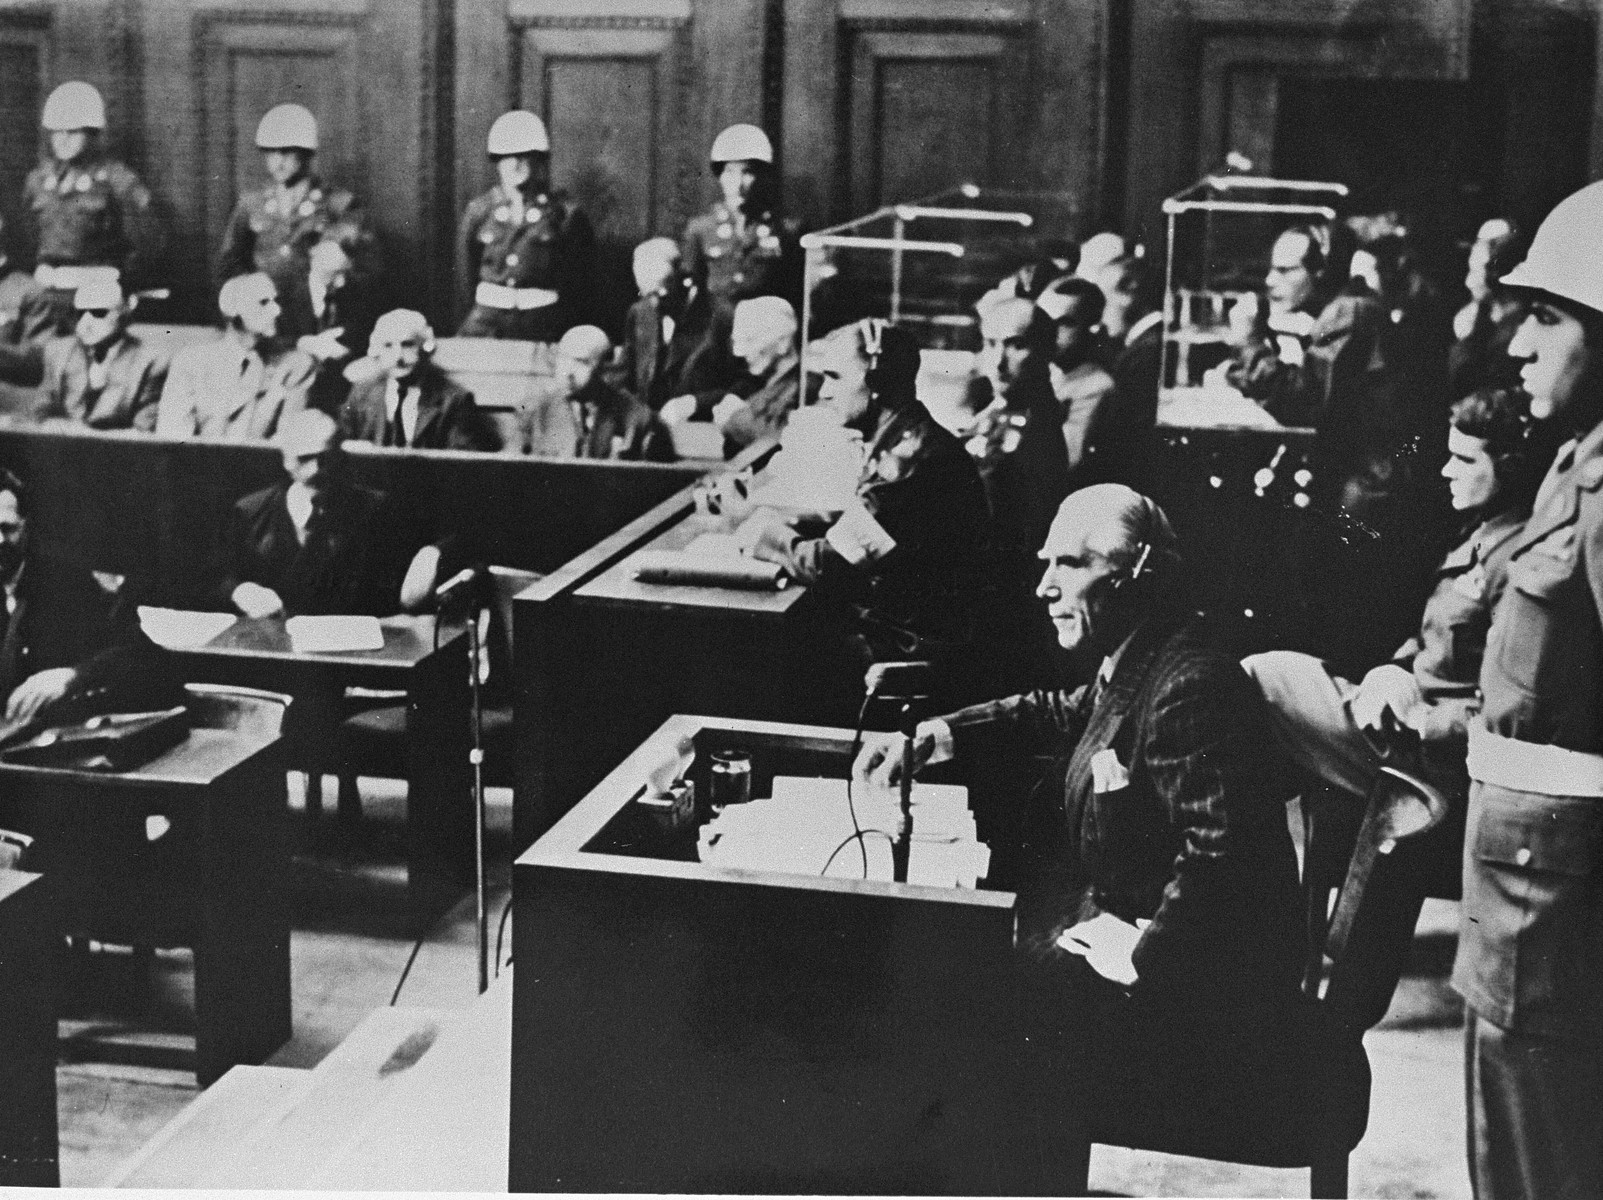 Former Vice-Chancellor Franz Von Papen in the witness box at the International Military Tribunal trial of war criminals at Nuremberg.